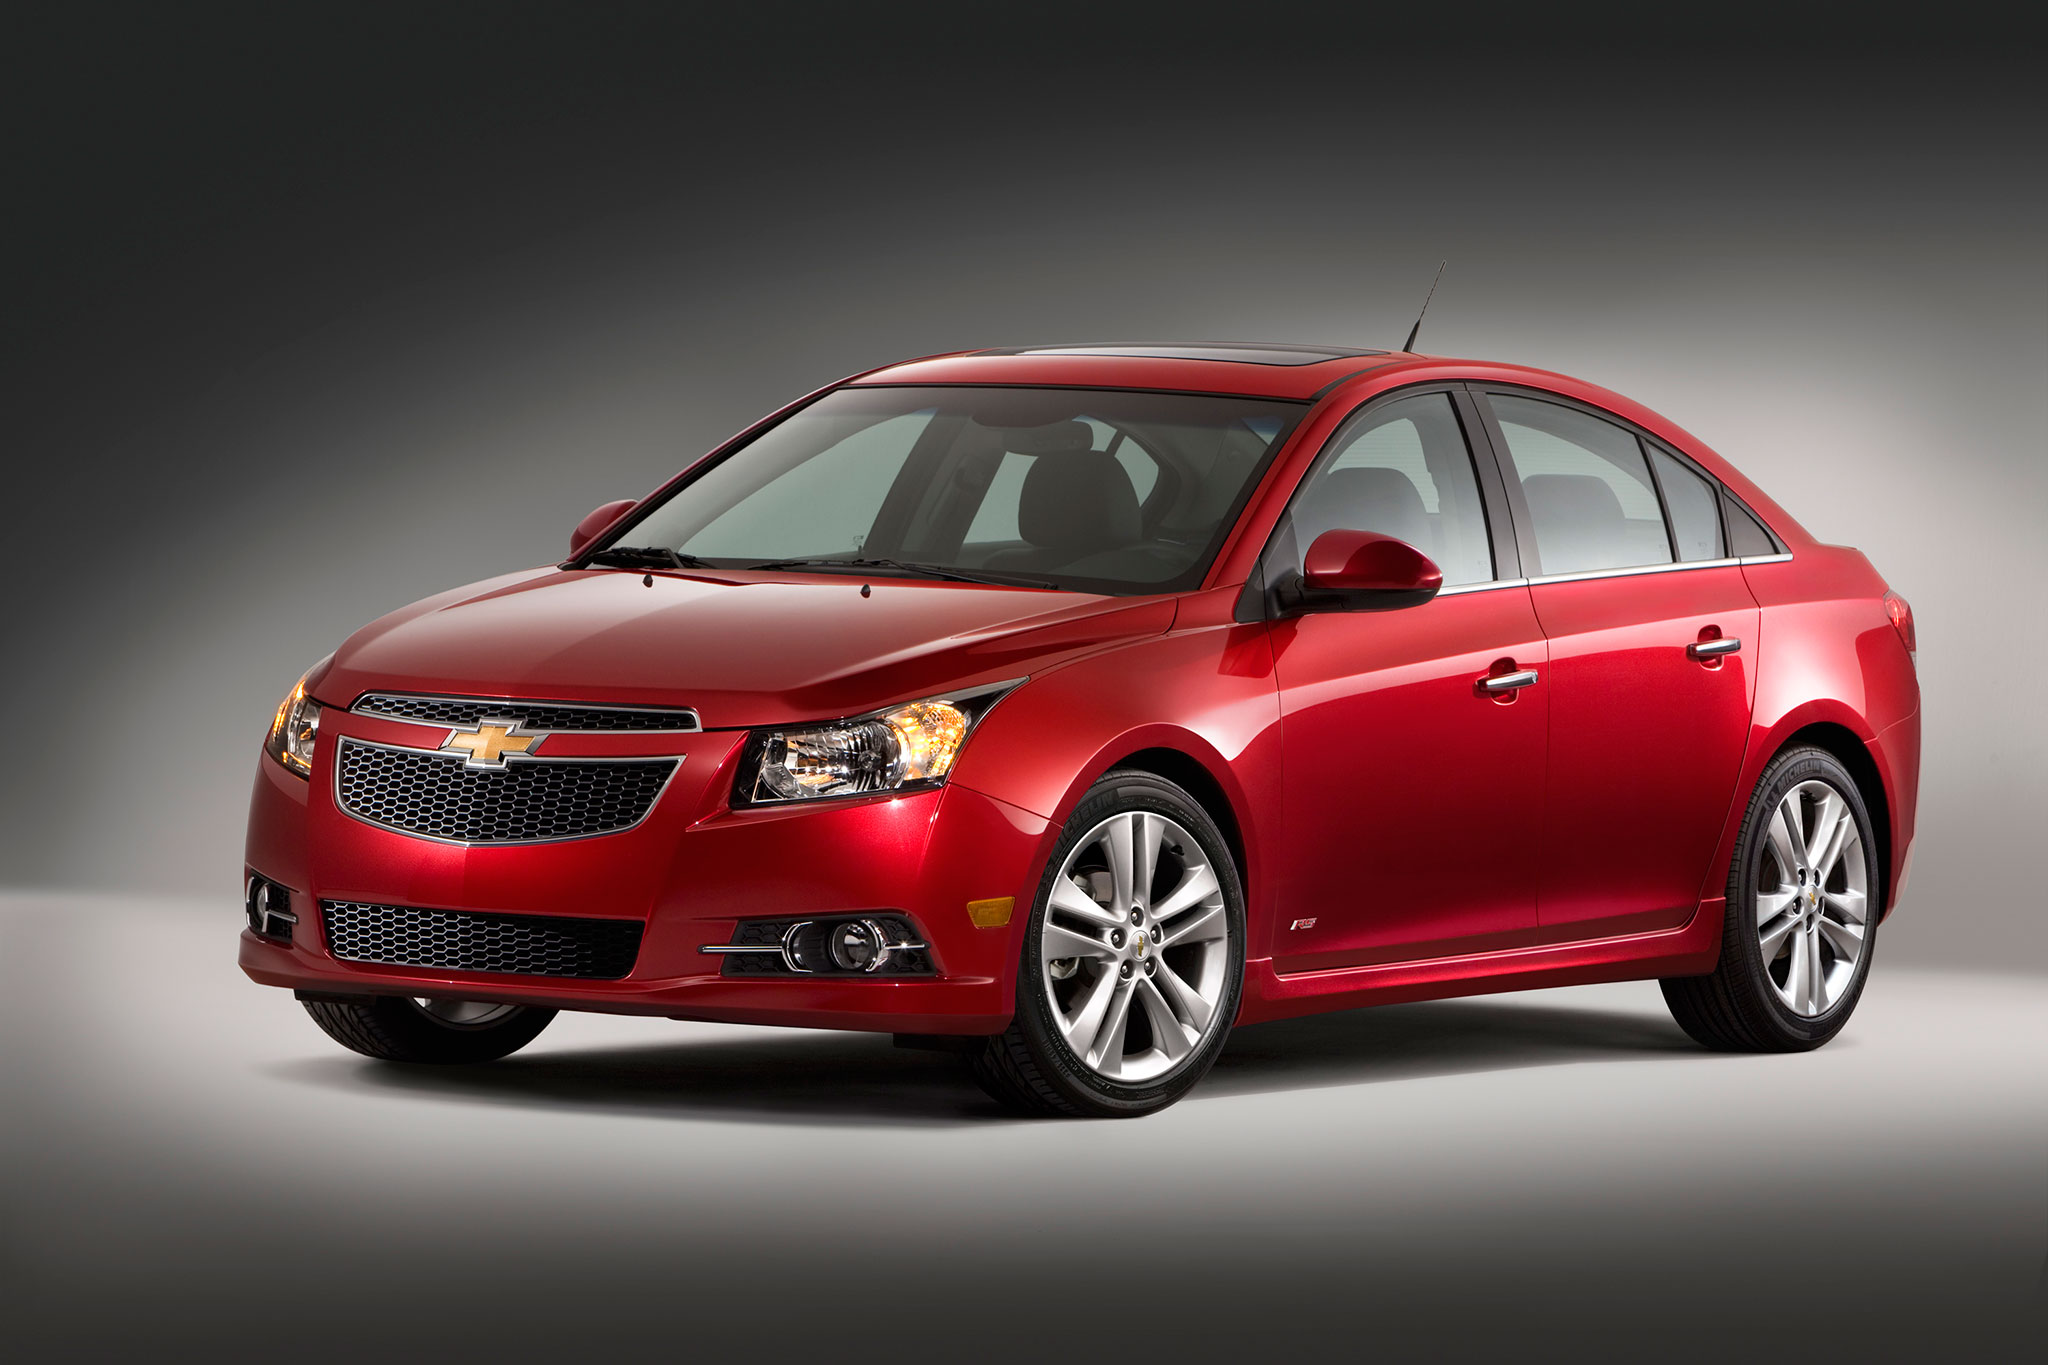 Chevrolet Cruze Owners Manual: When Should an Airbag Inflate